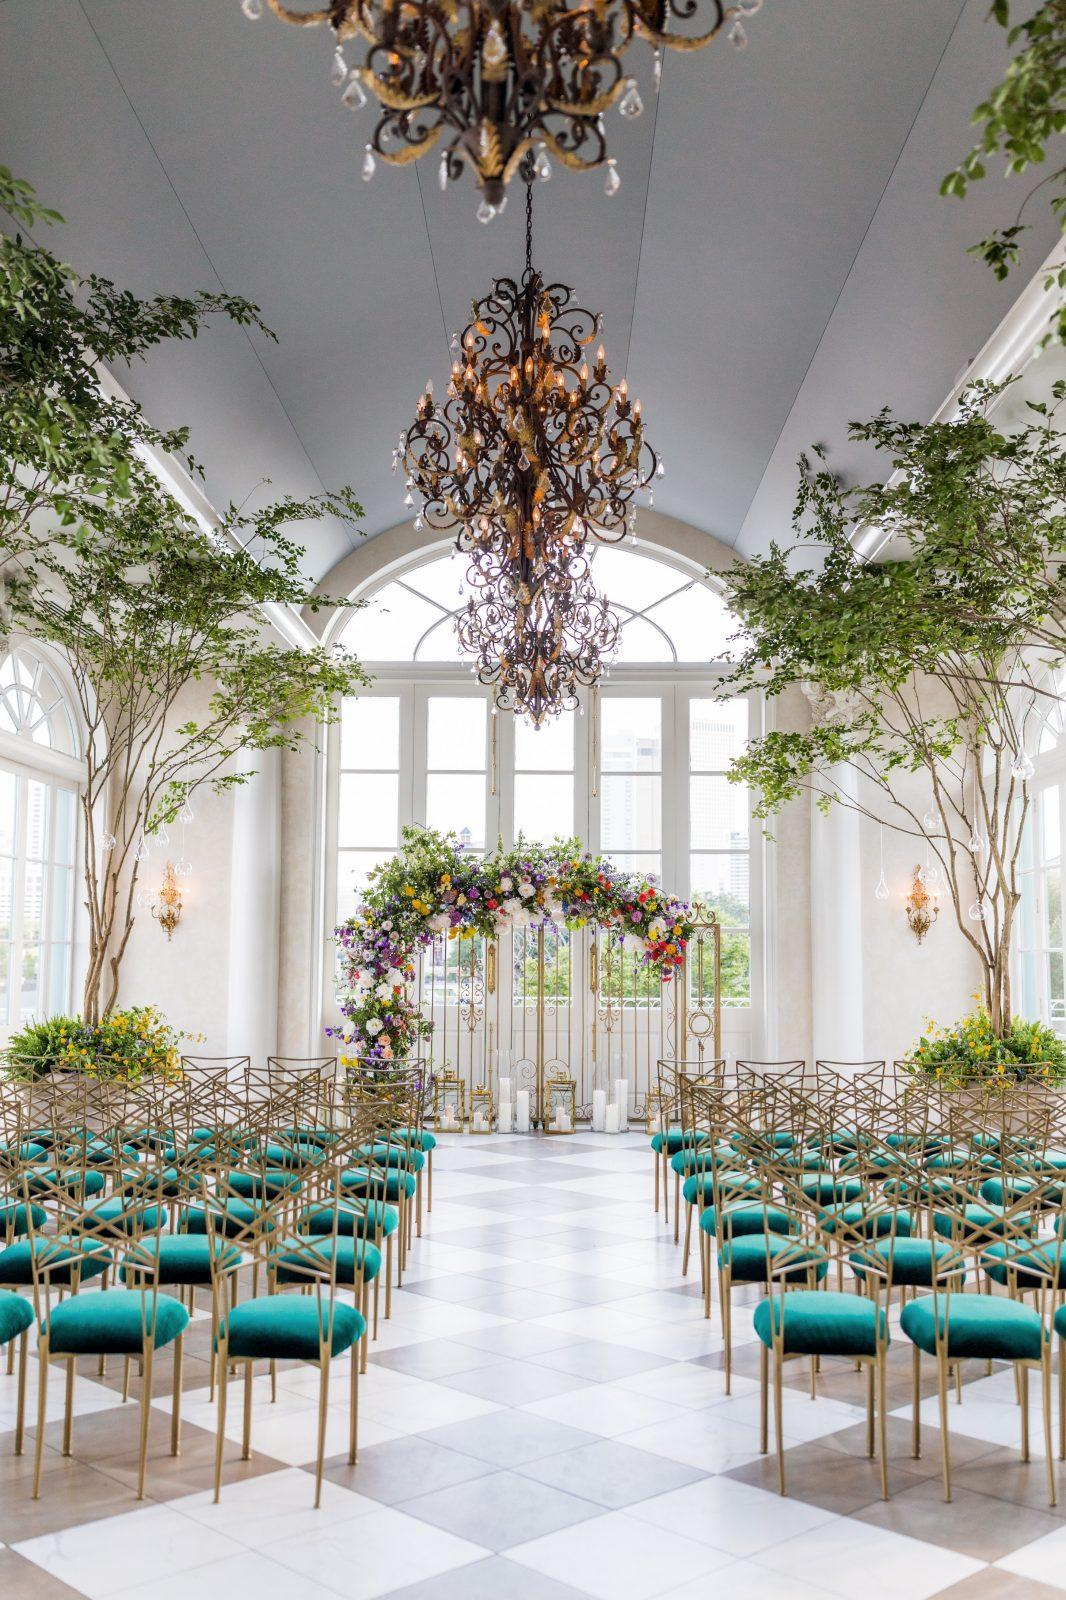 Wedding Ceremony set at Marche with True Value Rental Chameleon Chairs with green cushions. Photo by: Aislinn Kate Photography